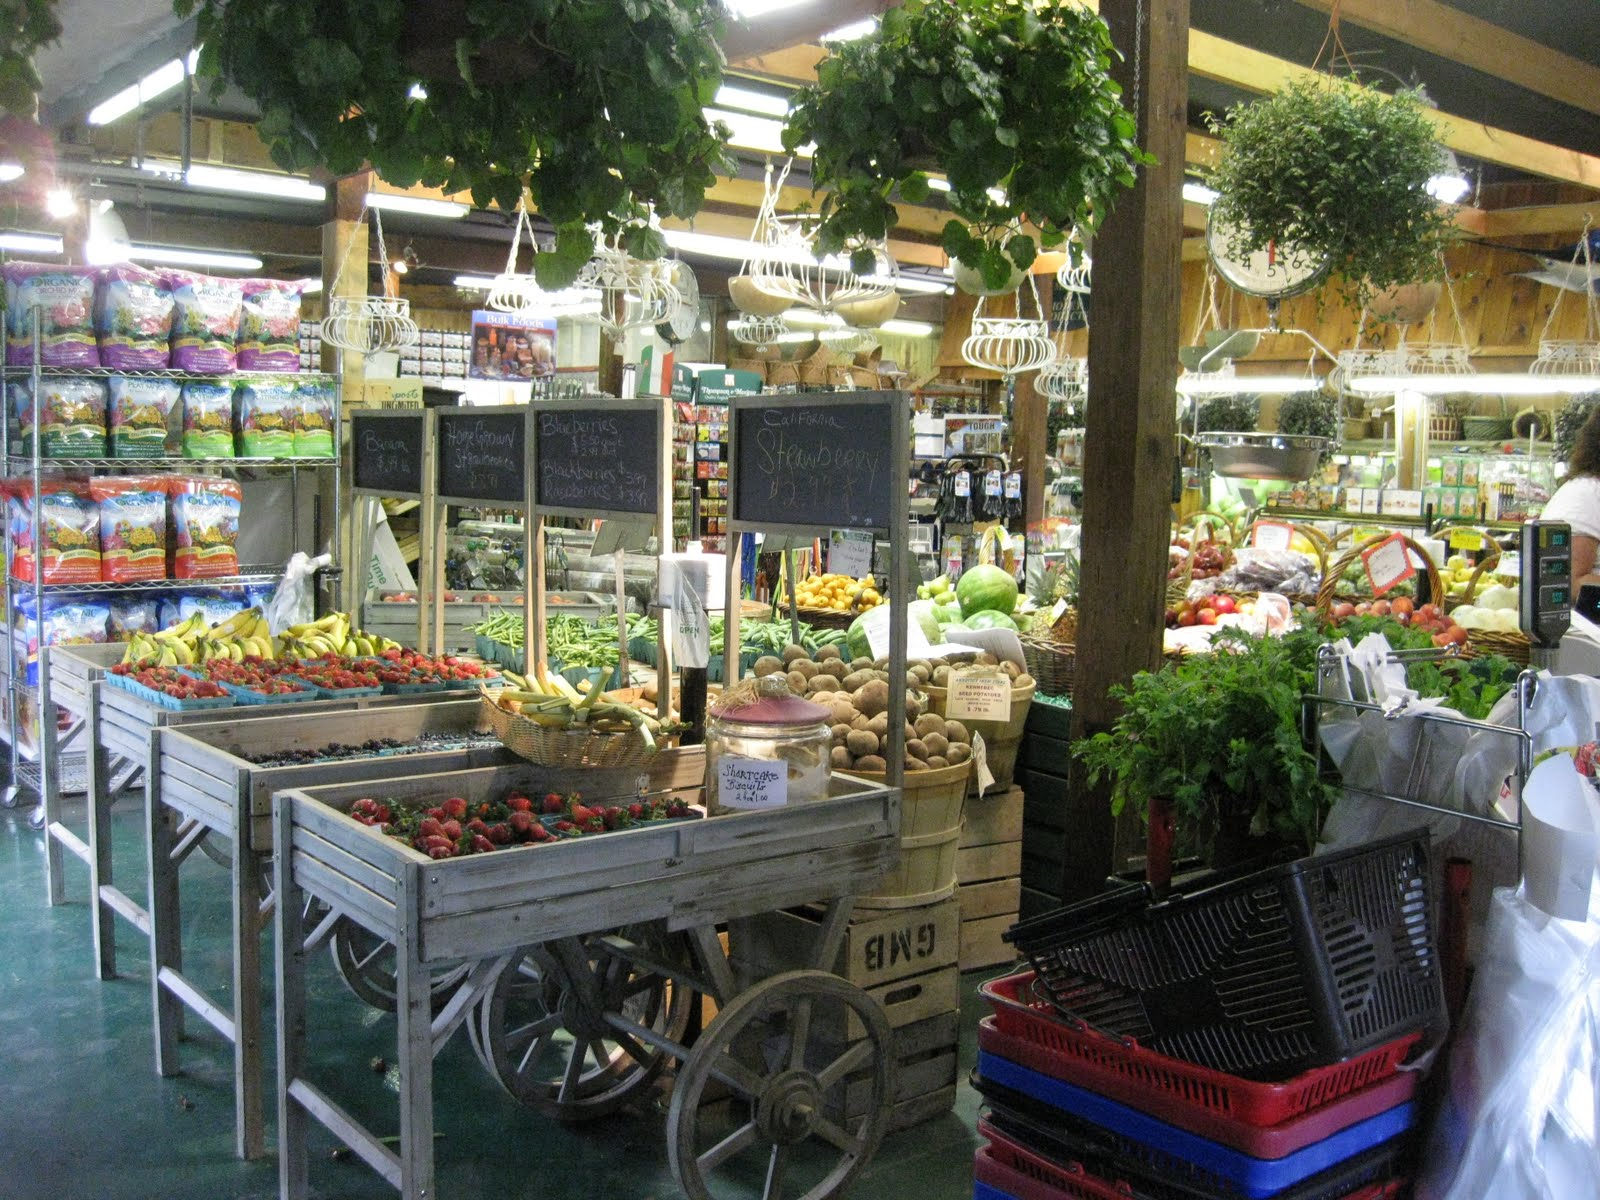 Annutto's Farm Stand